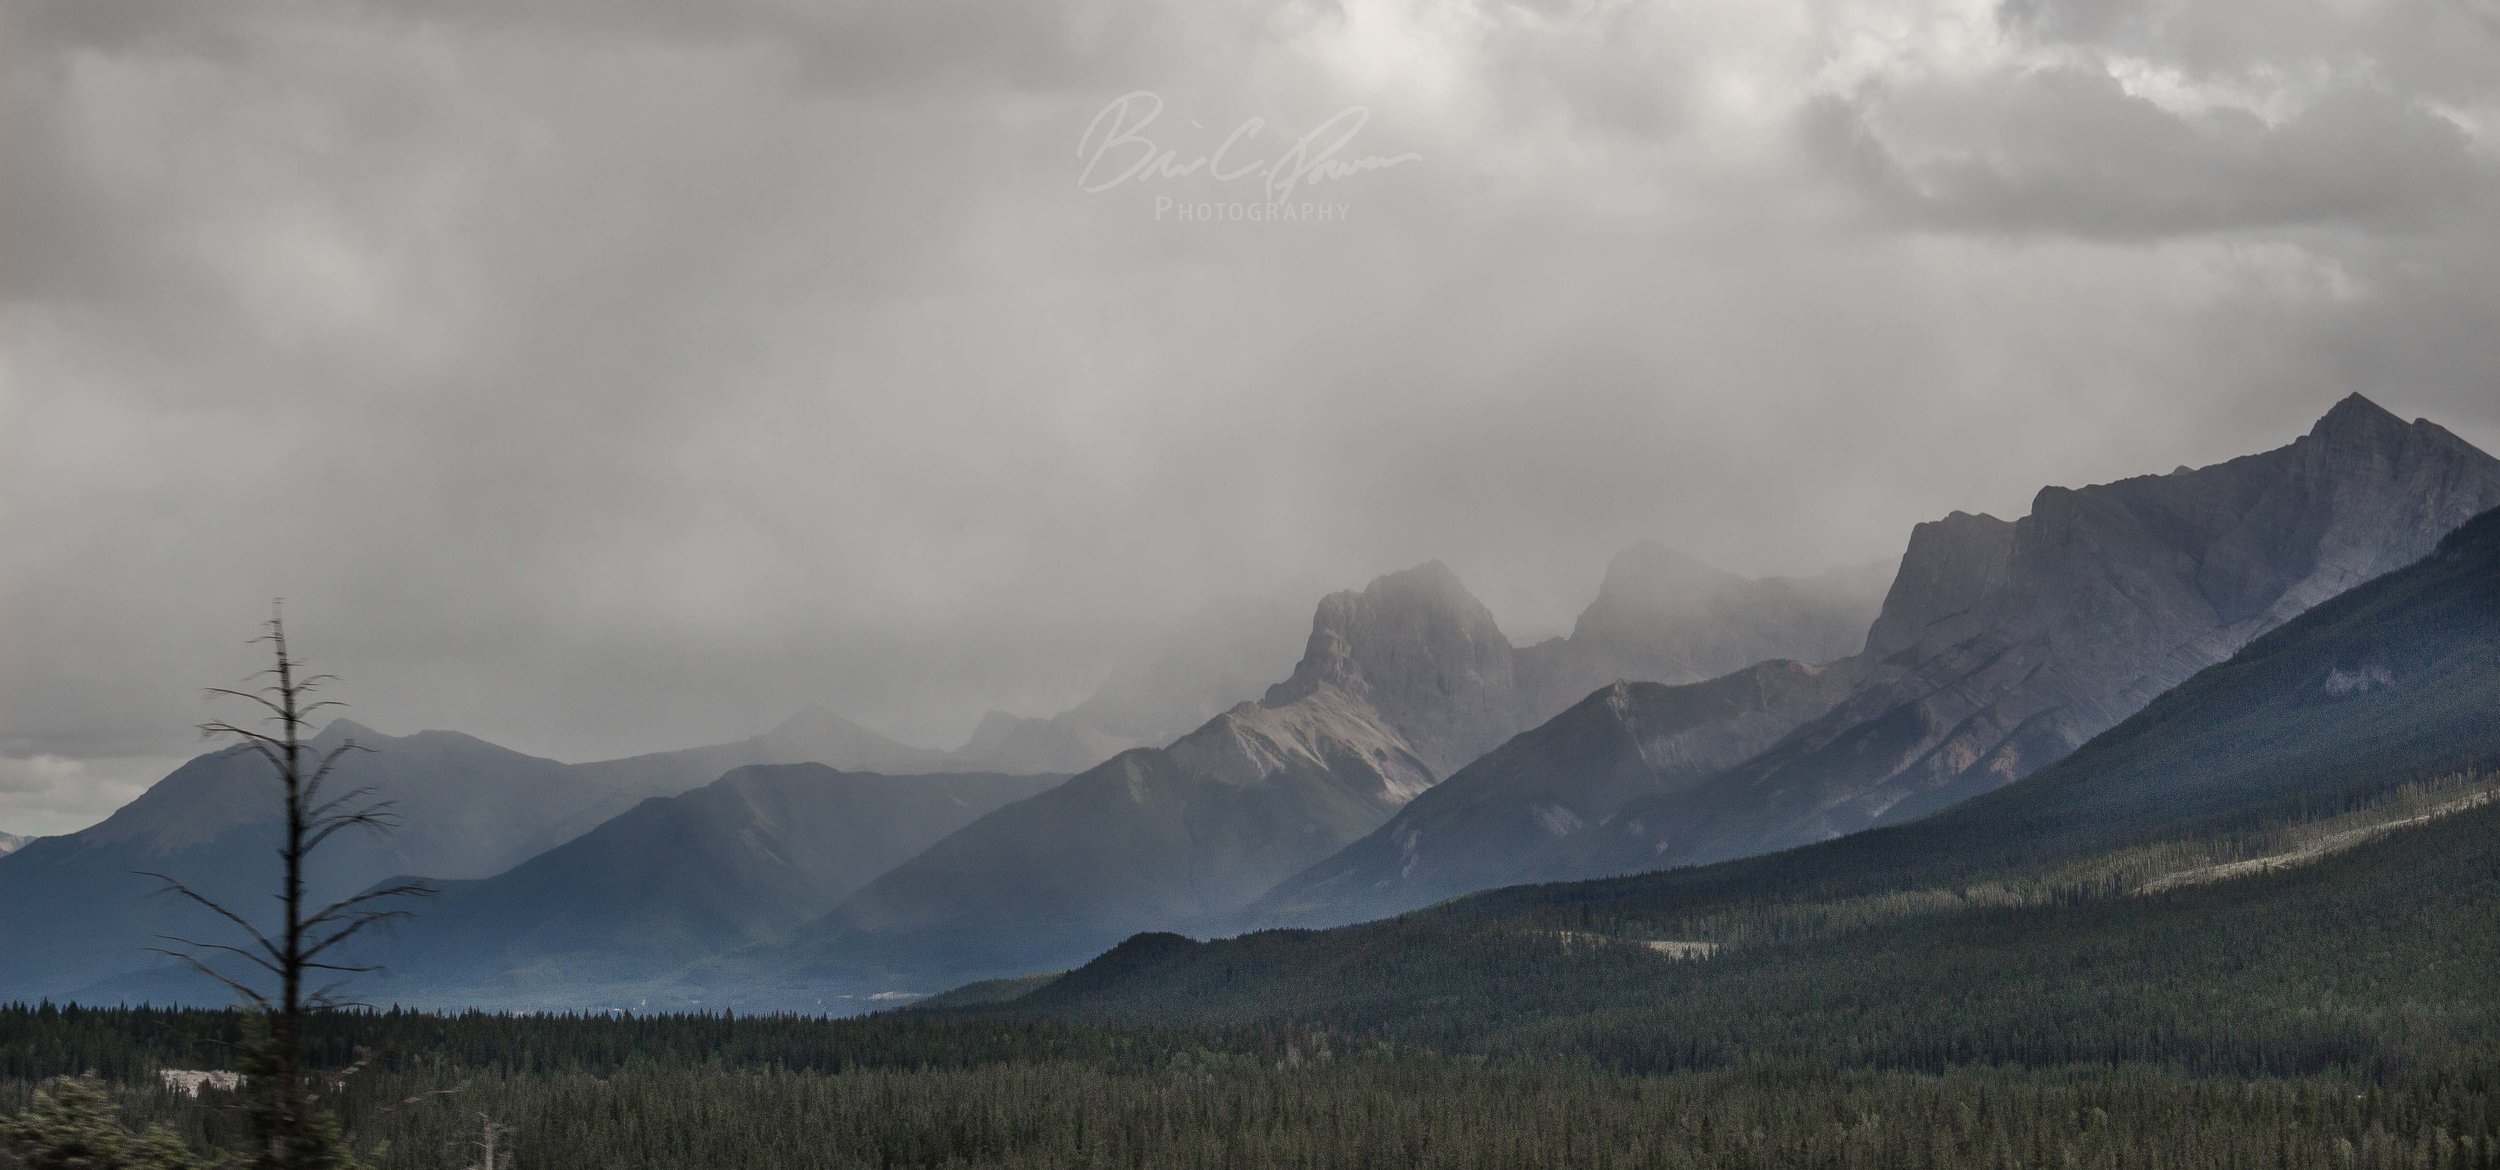 Storm – The road through Kananaskis Country